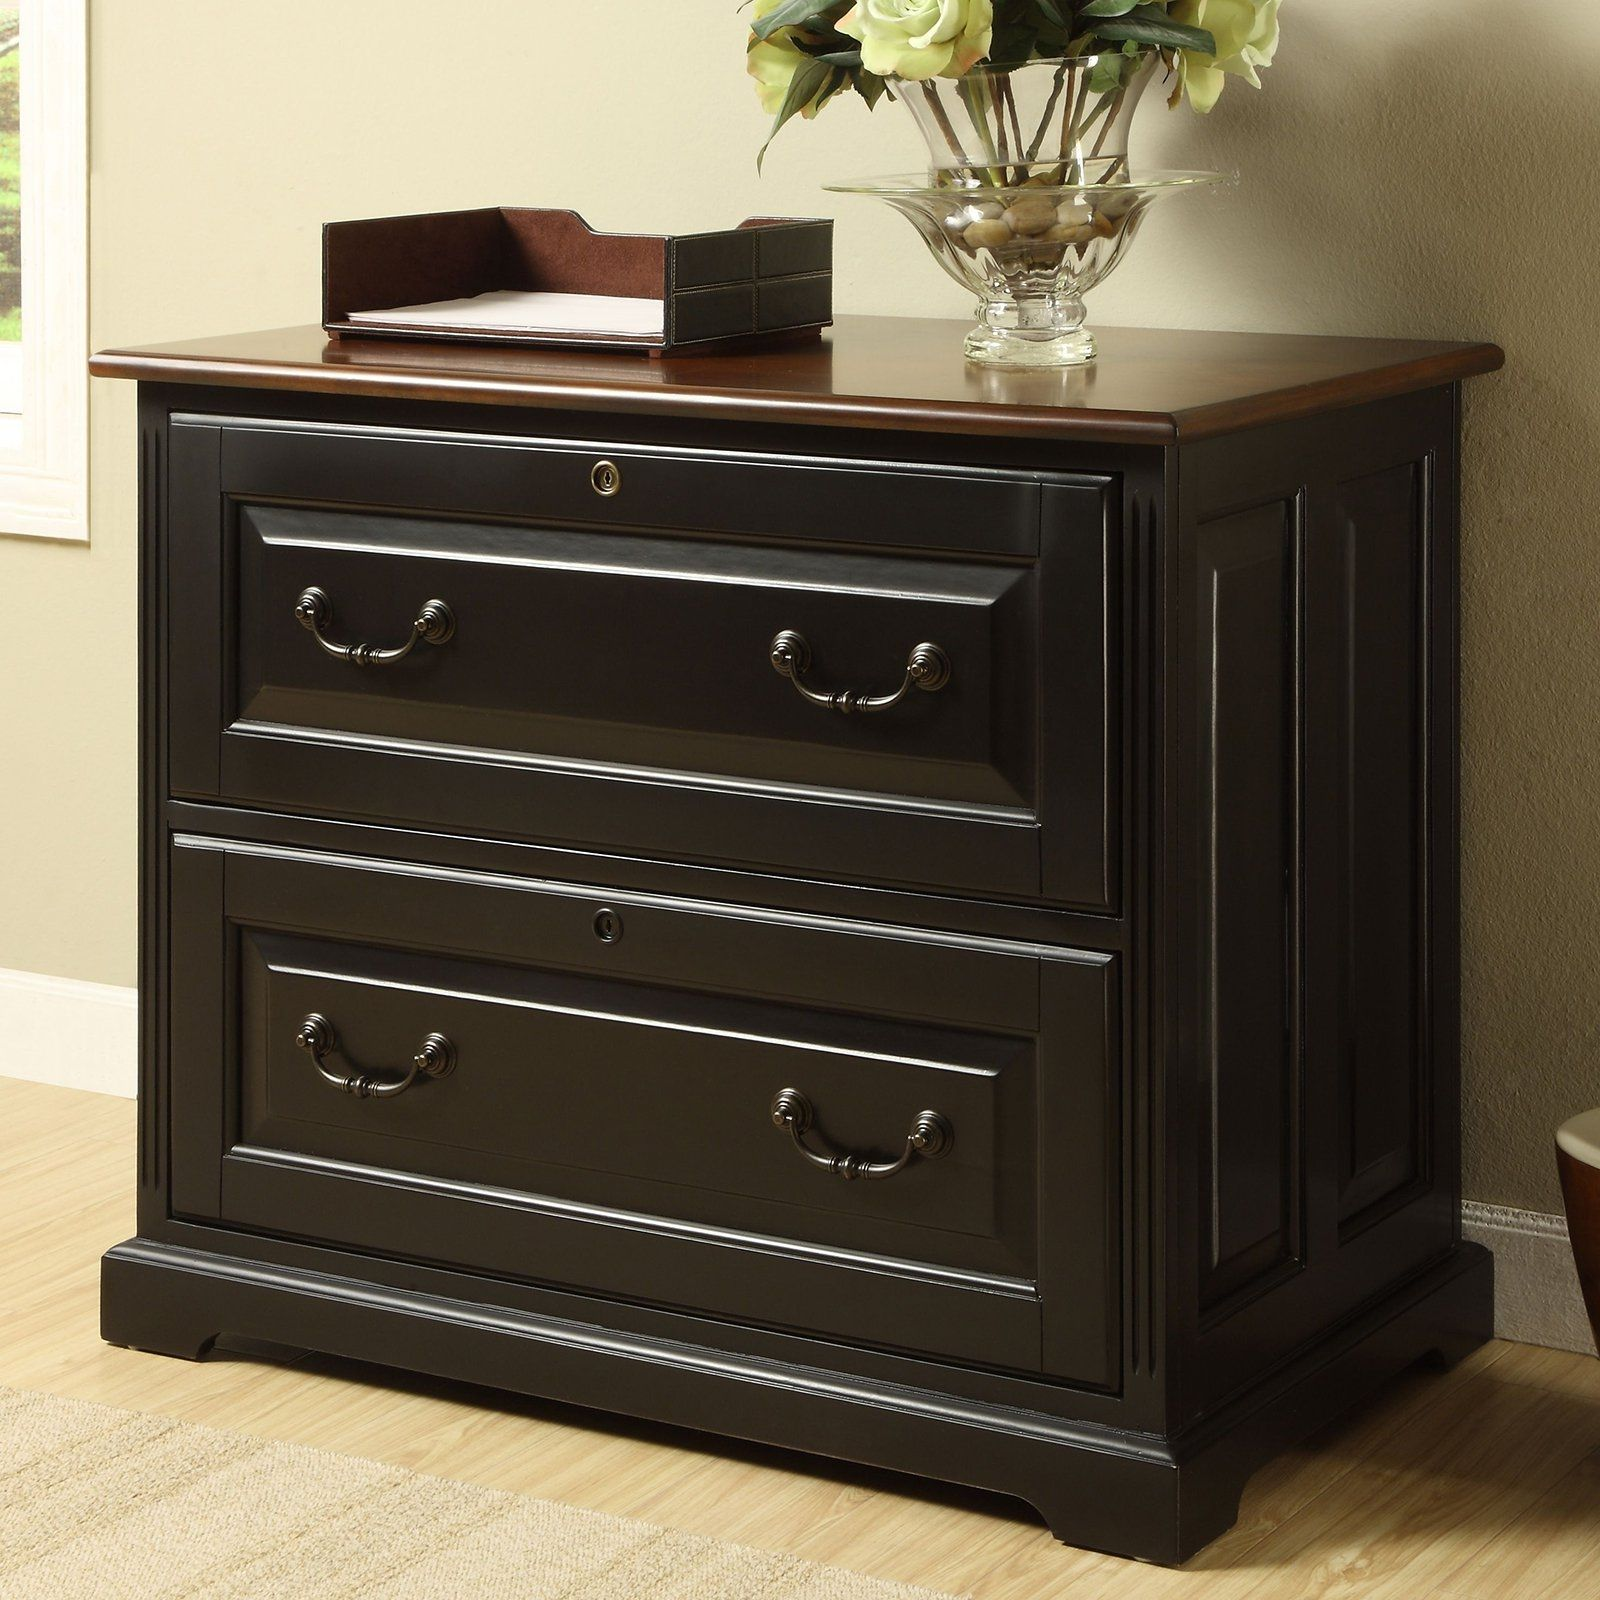 Black Wooden File Cabinets 2 Drawer